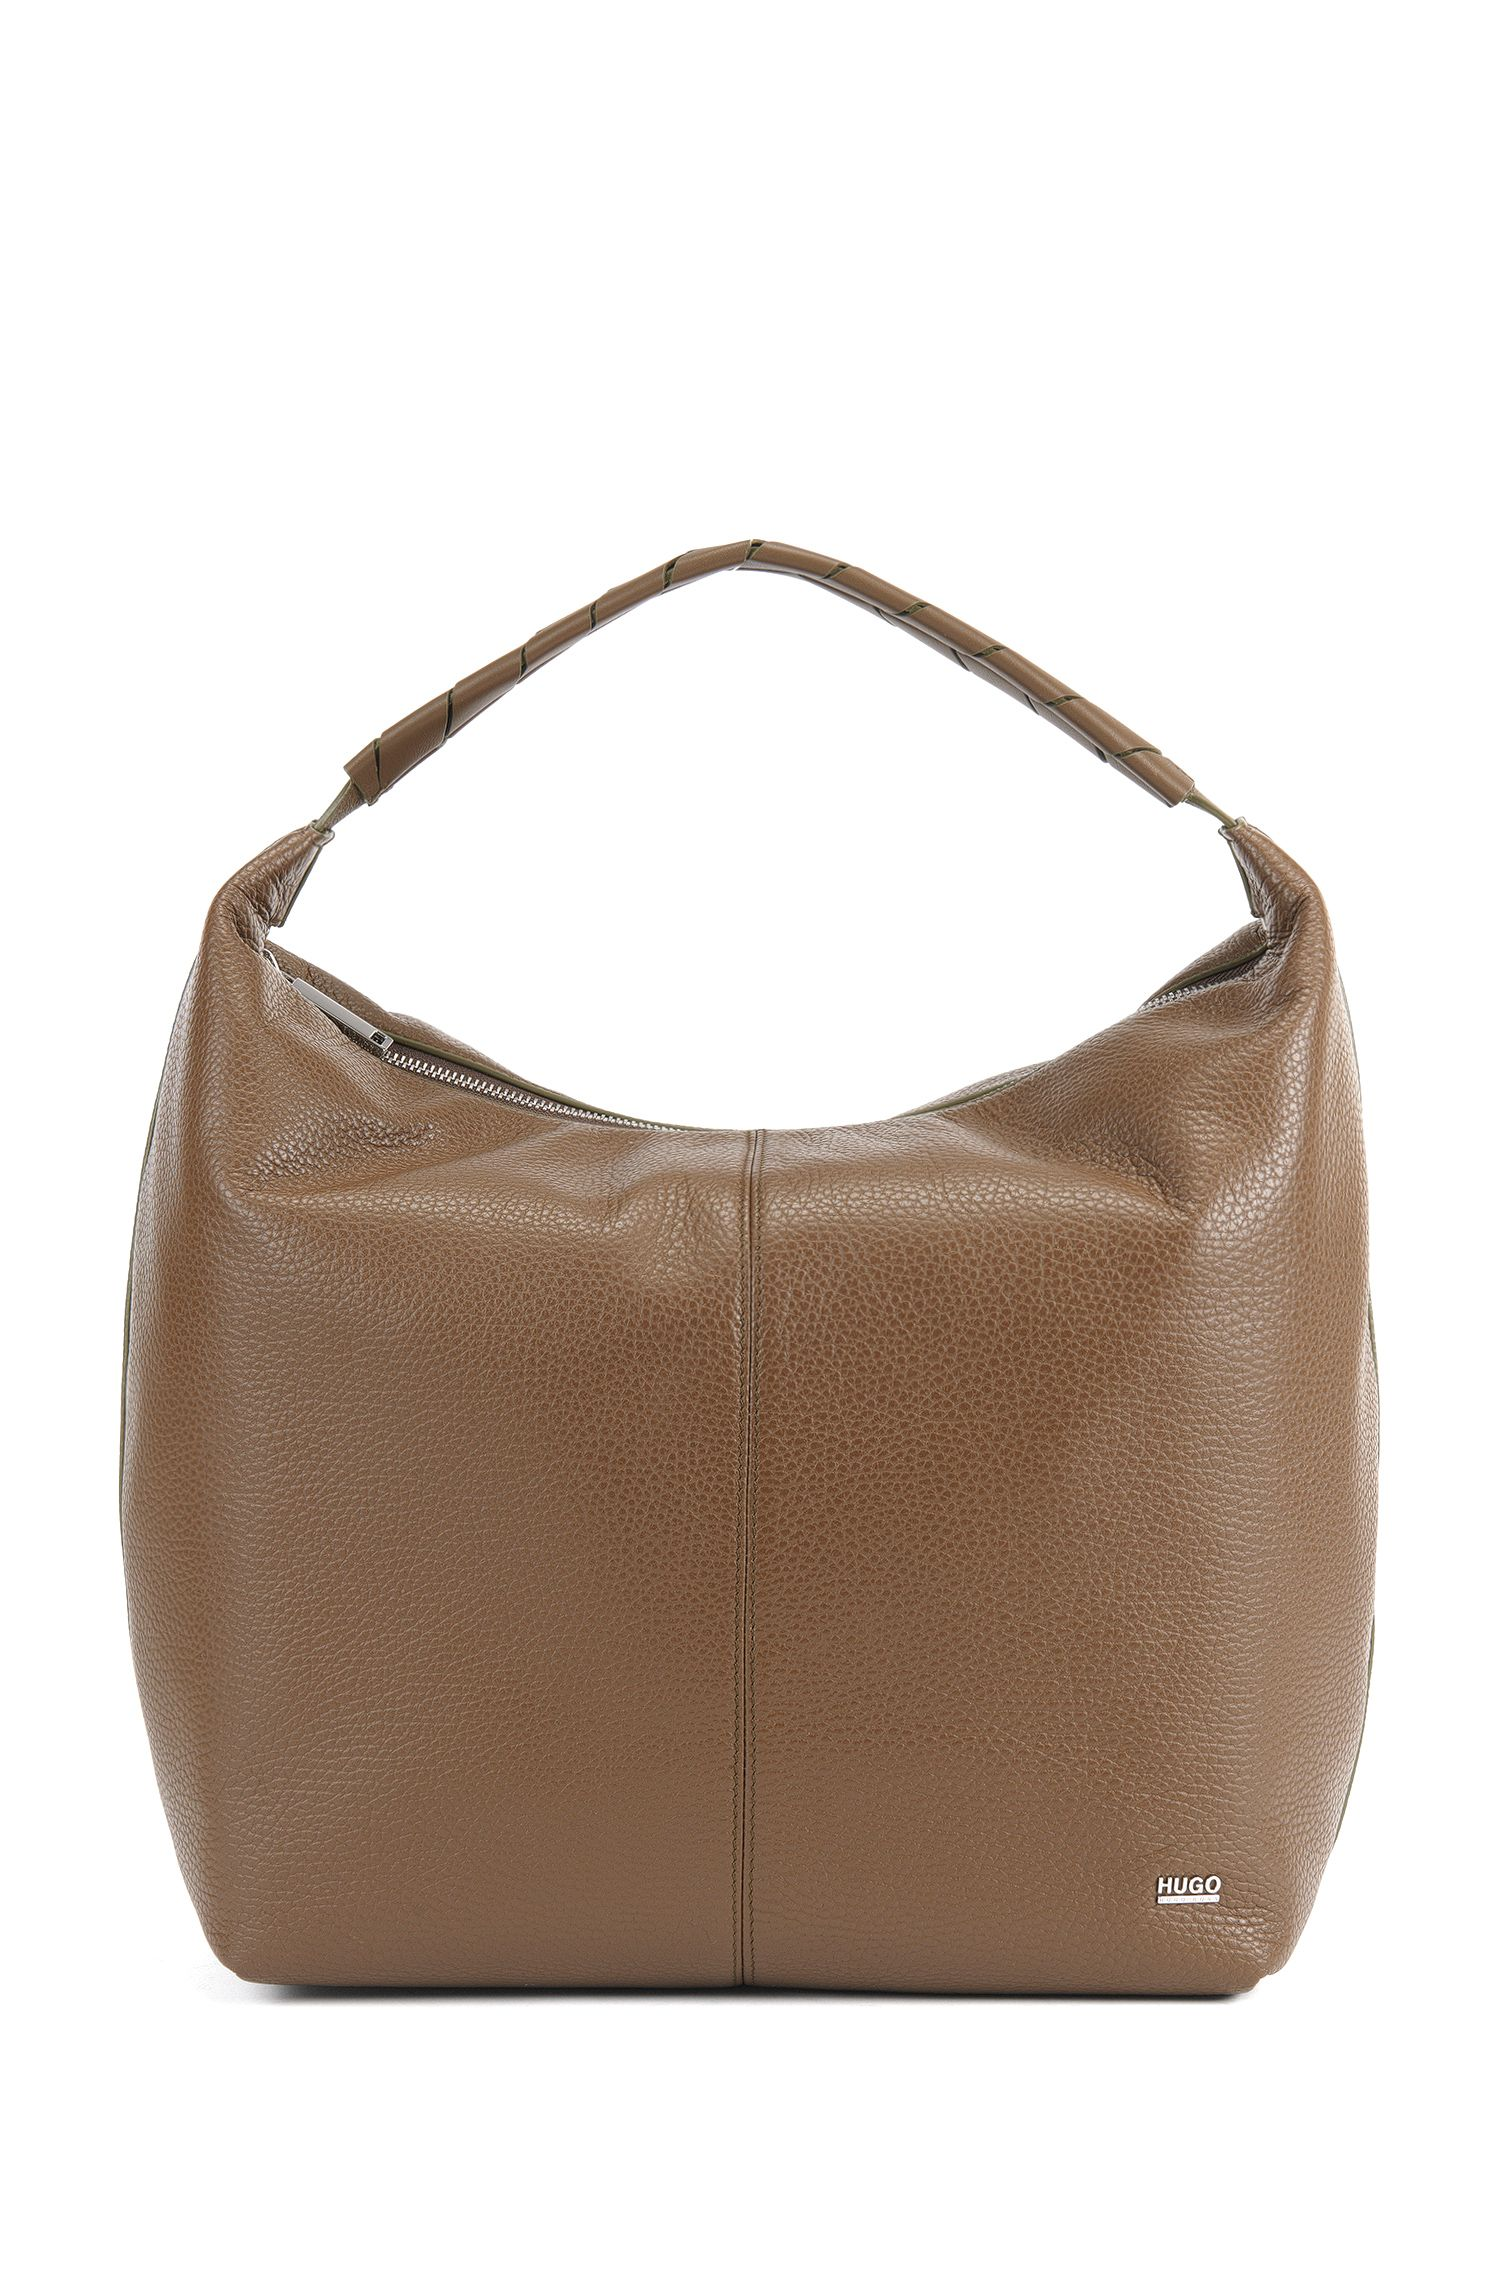 Slouch hobo bag in textured Italian leather